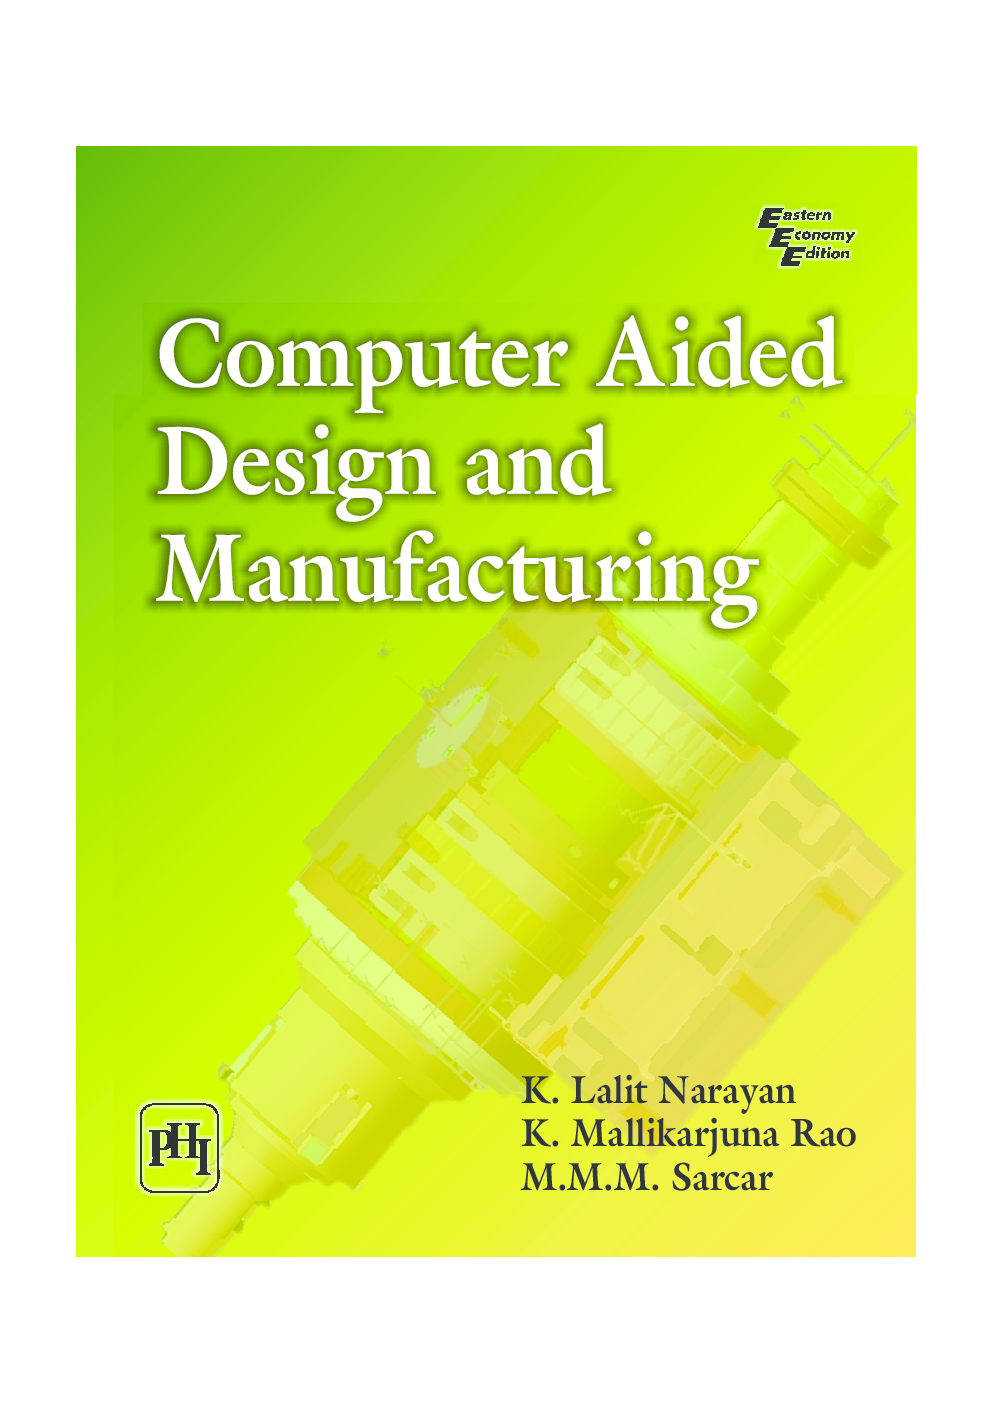 Computer Aided Design And Manufacturing (PHI) - Page 1